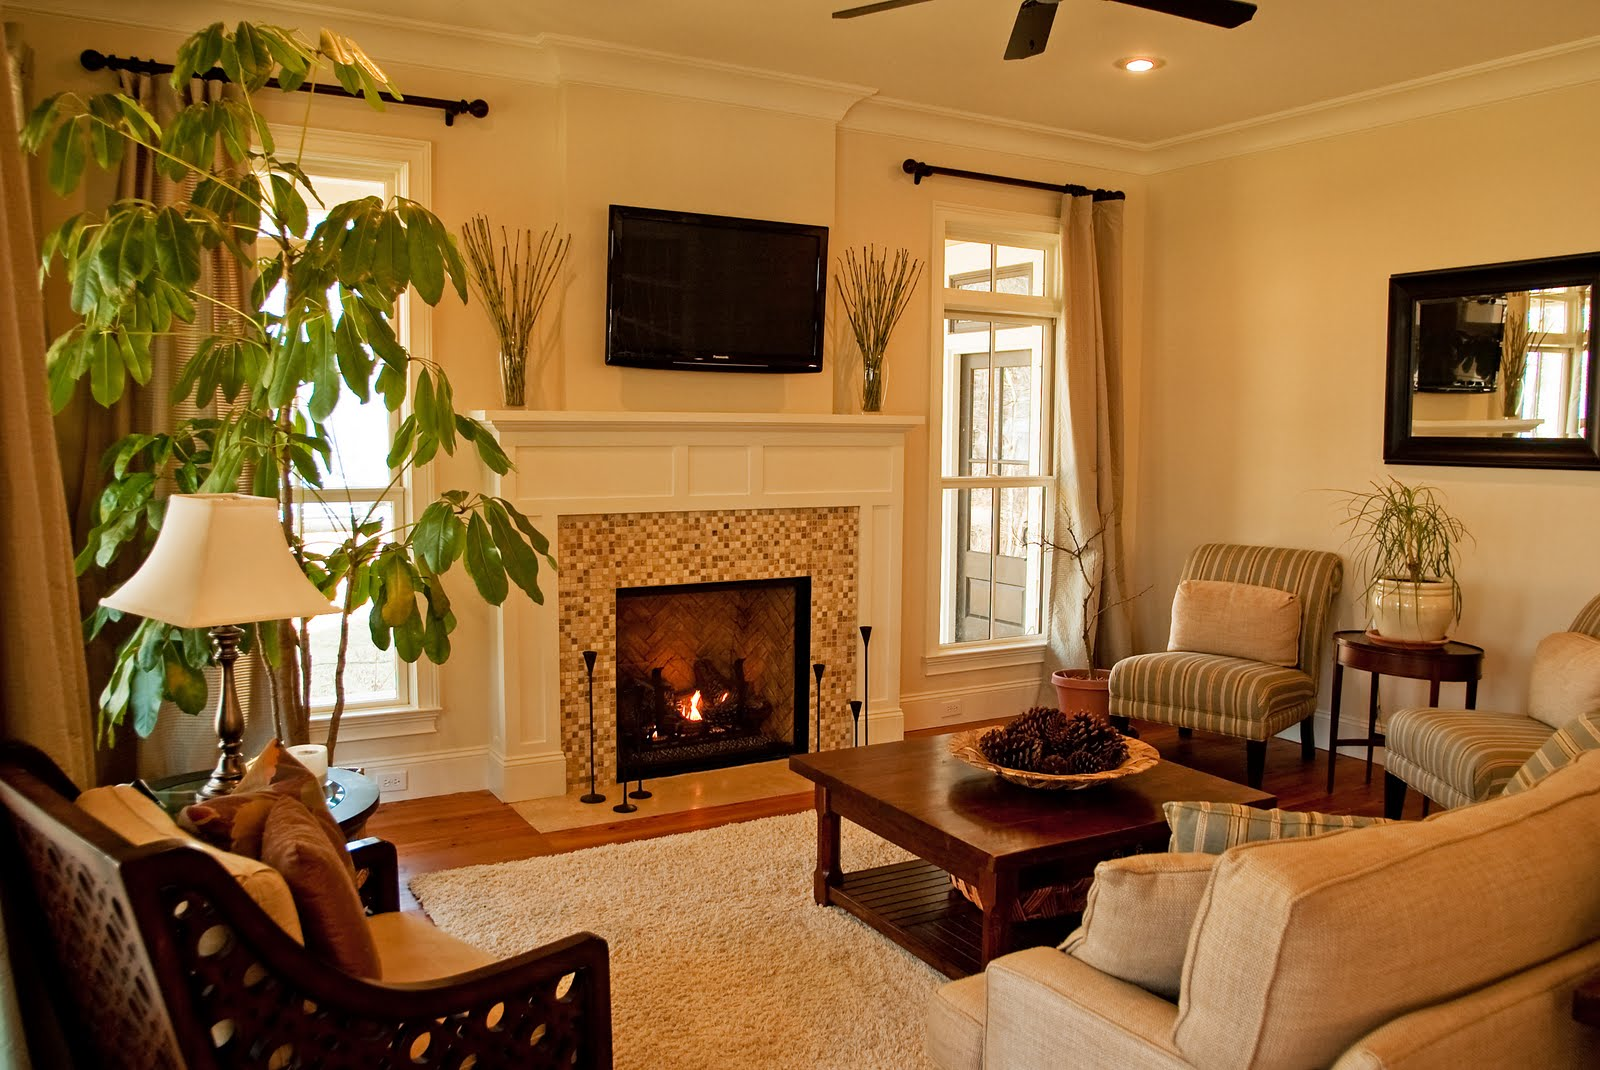 Small Living Room With Fireplace - Modern House on Small Space Small Living Room With Fireplace  id=57212